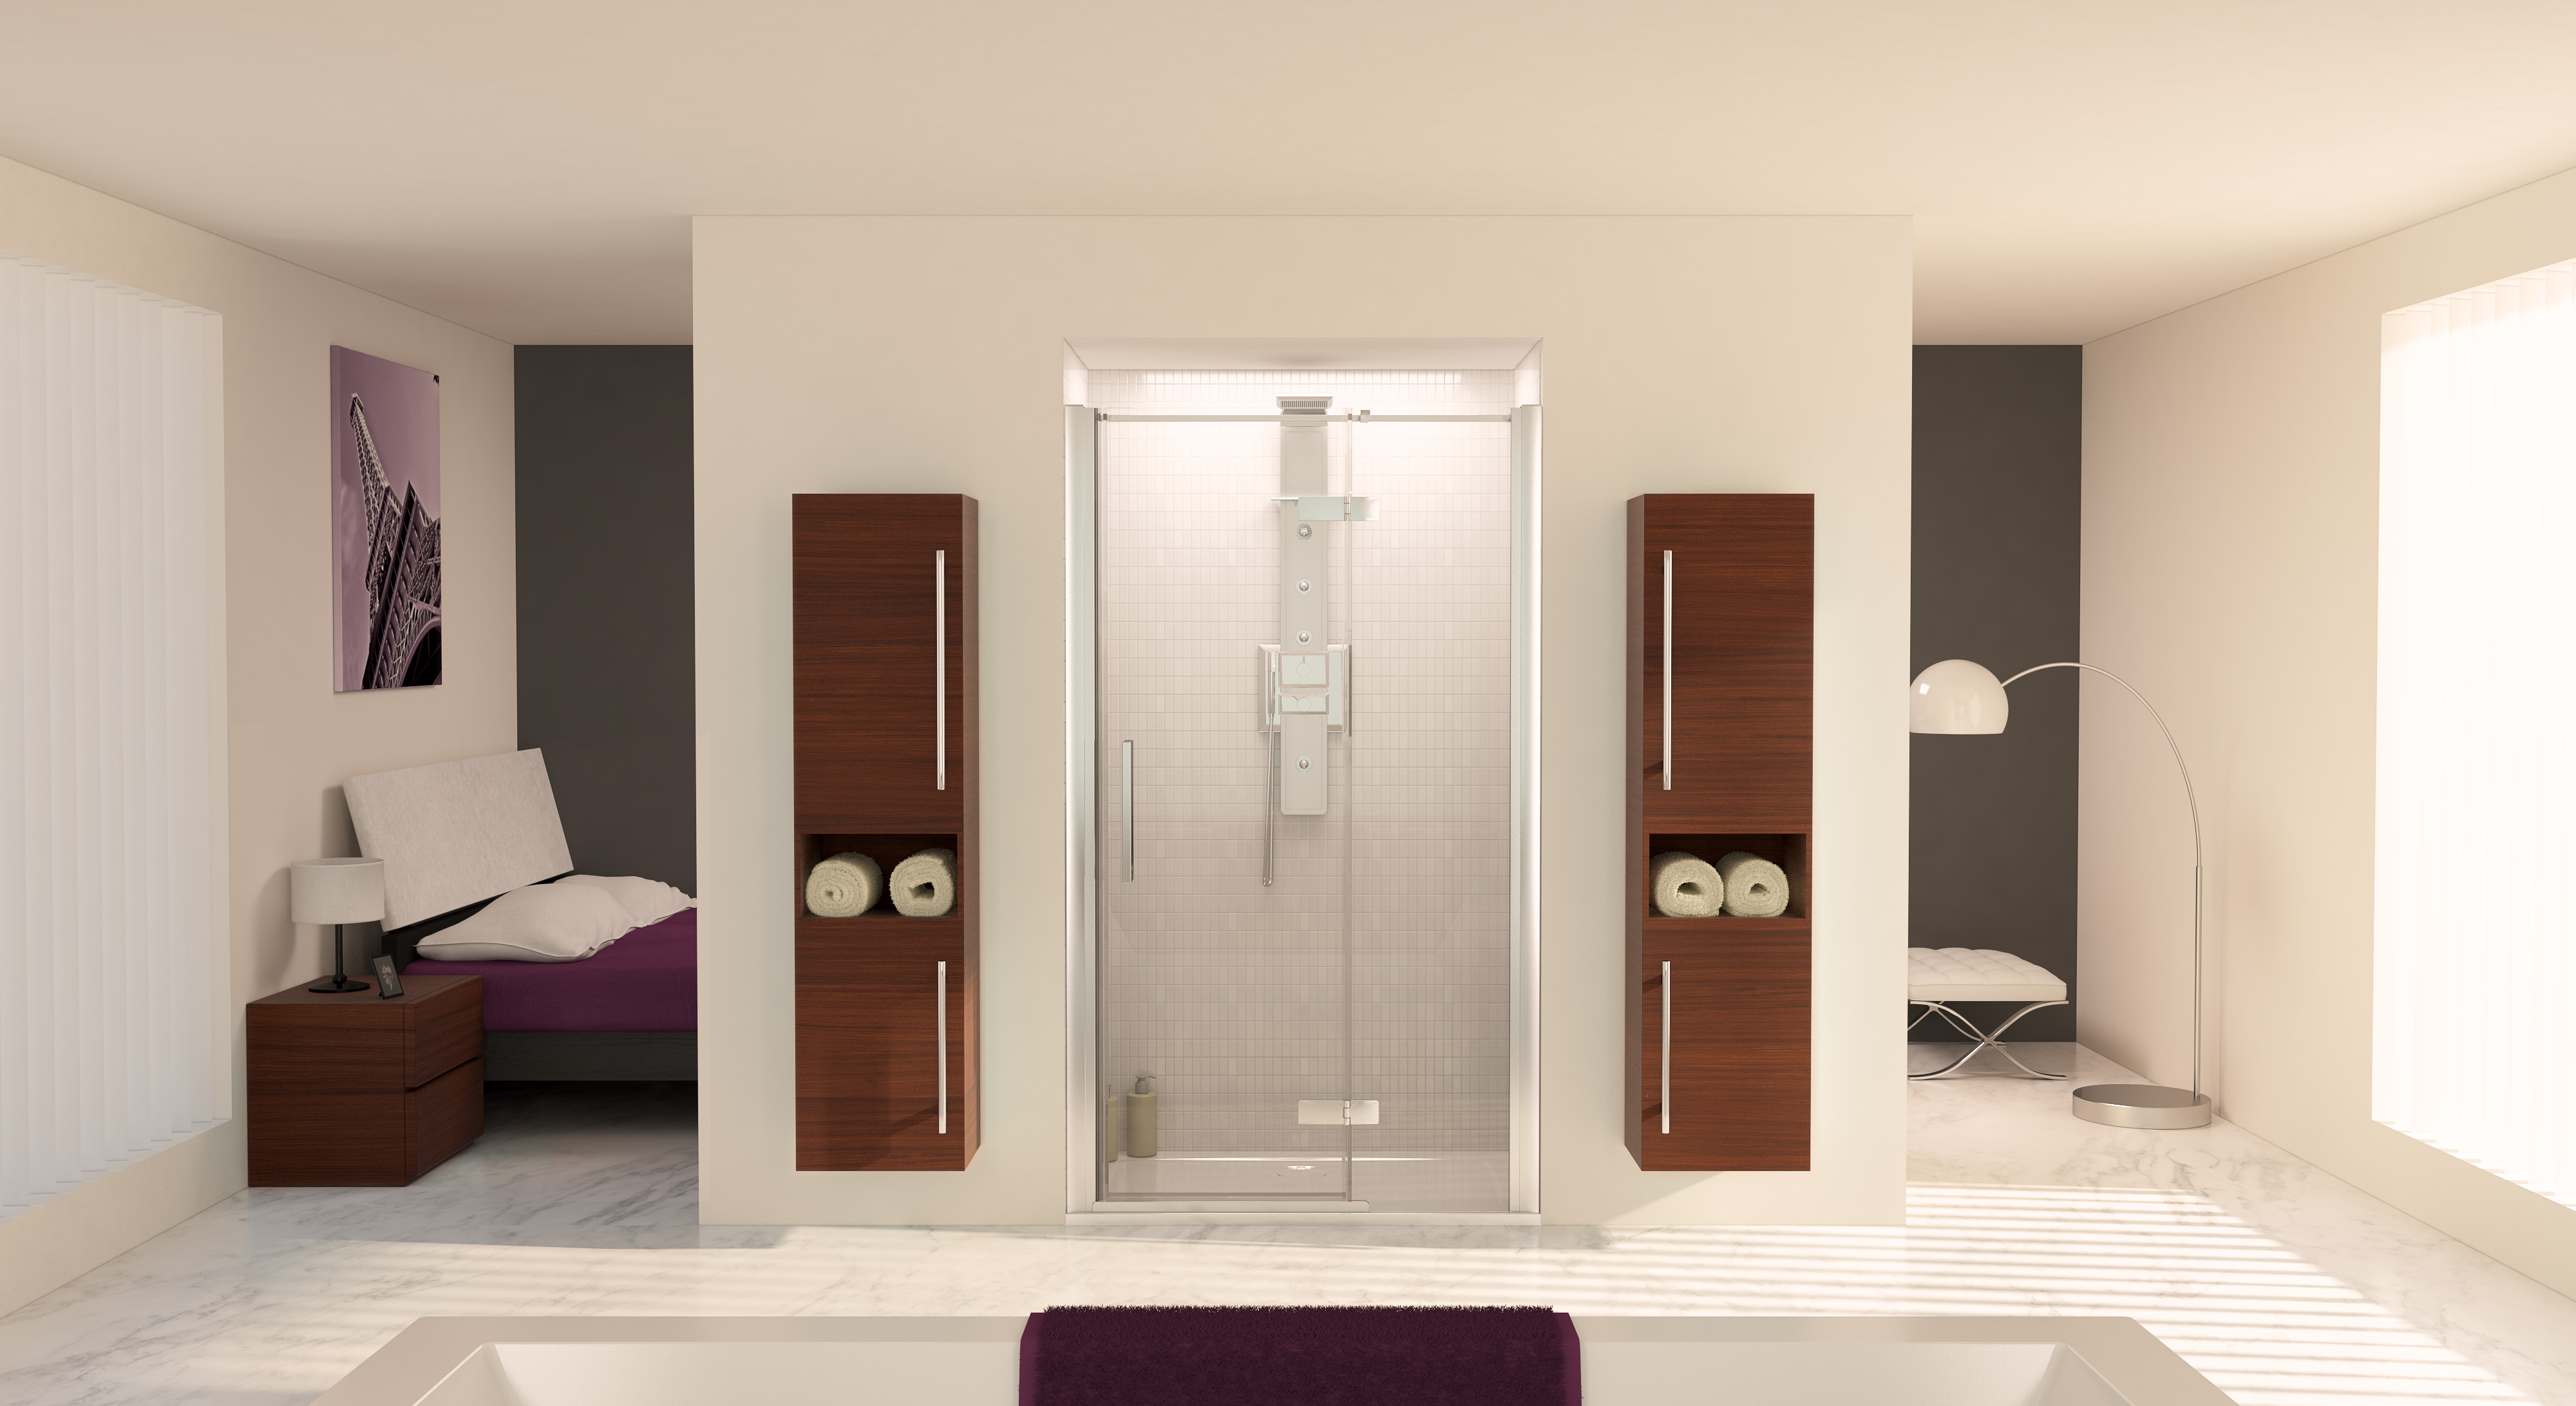 Aqualux aqua8 hinge 1200 pivot door with fixed panel for 1200 hinged shower door